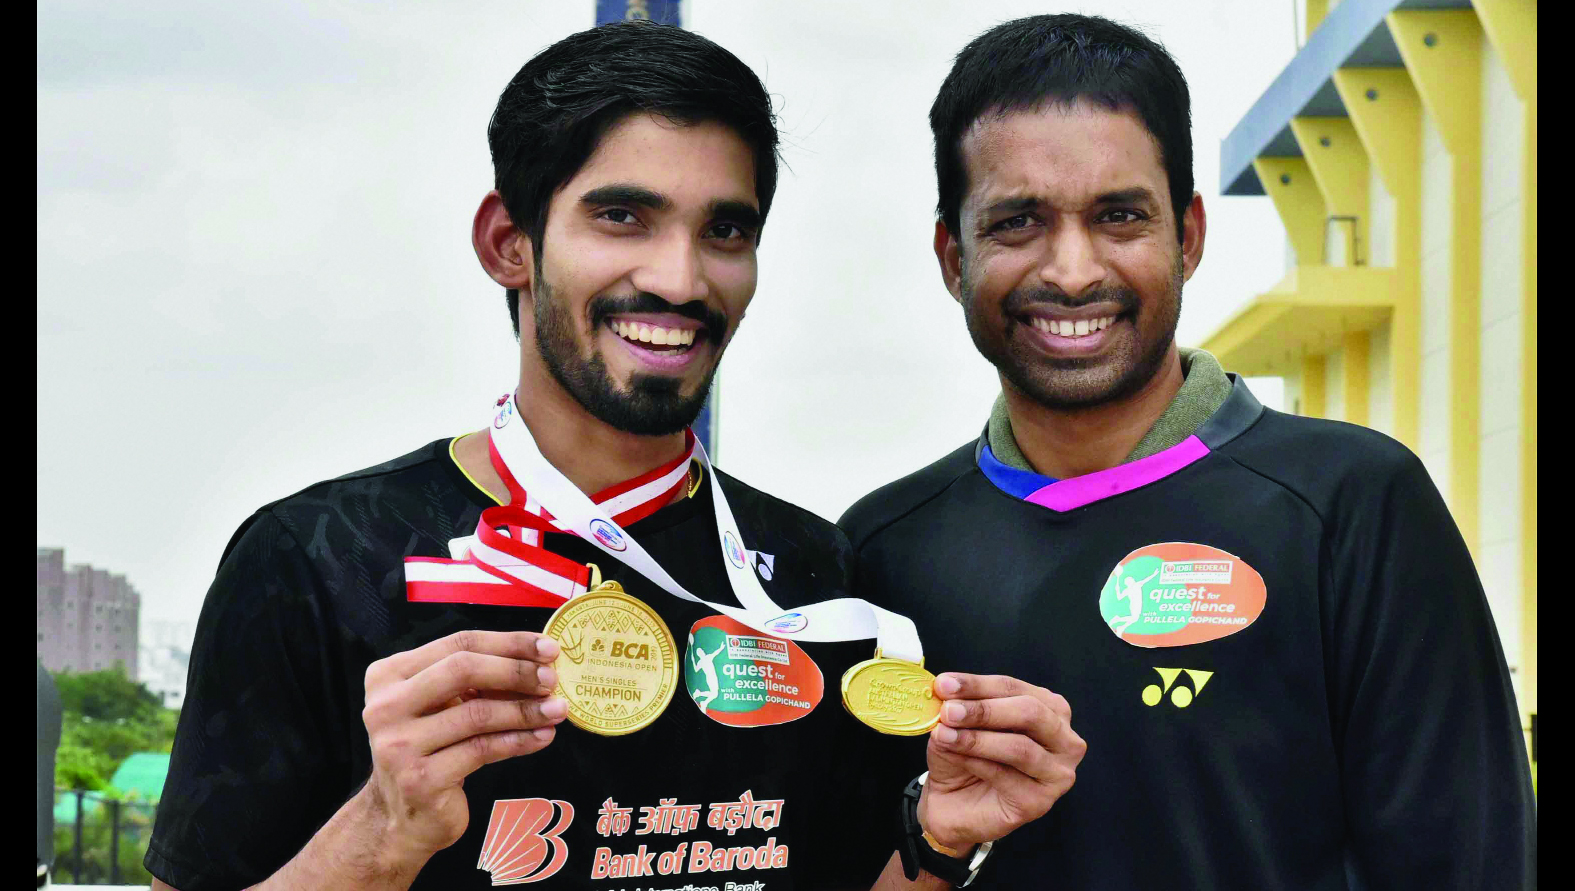 World Championship, Next Target, Srikanth Kidambi, Badminton